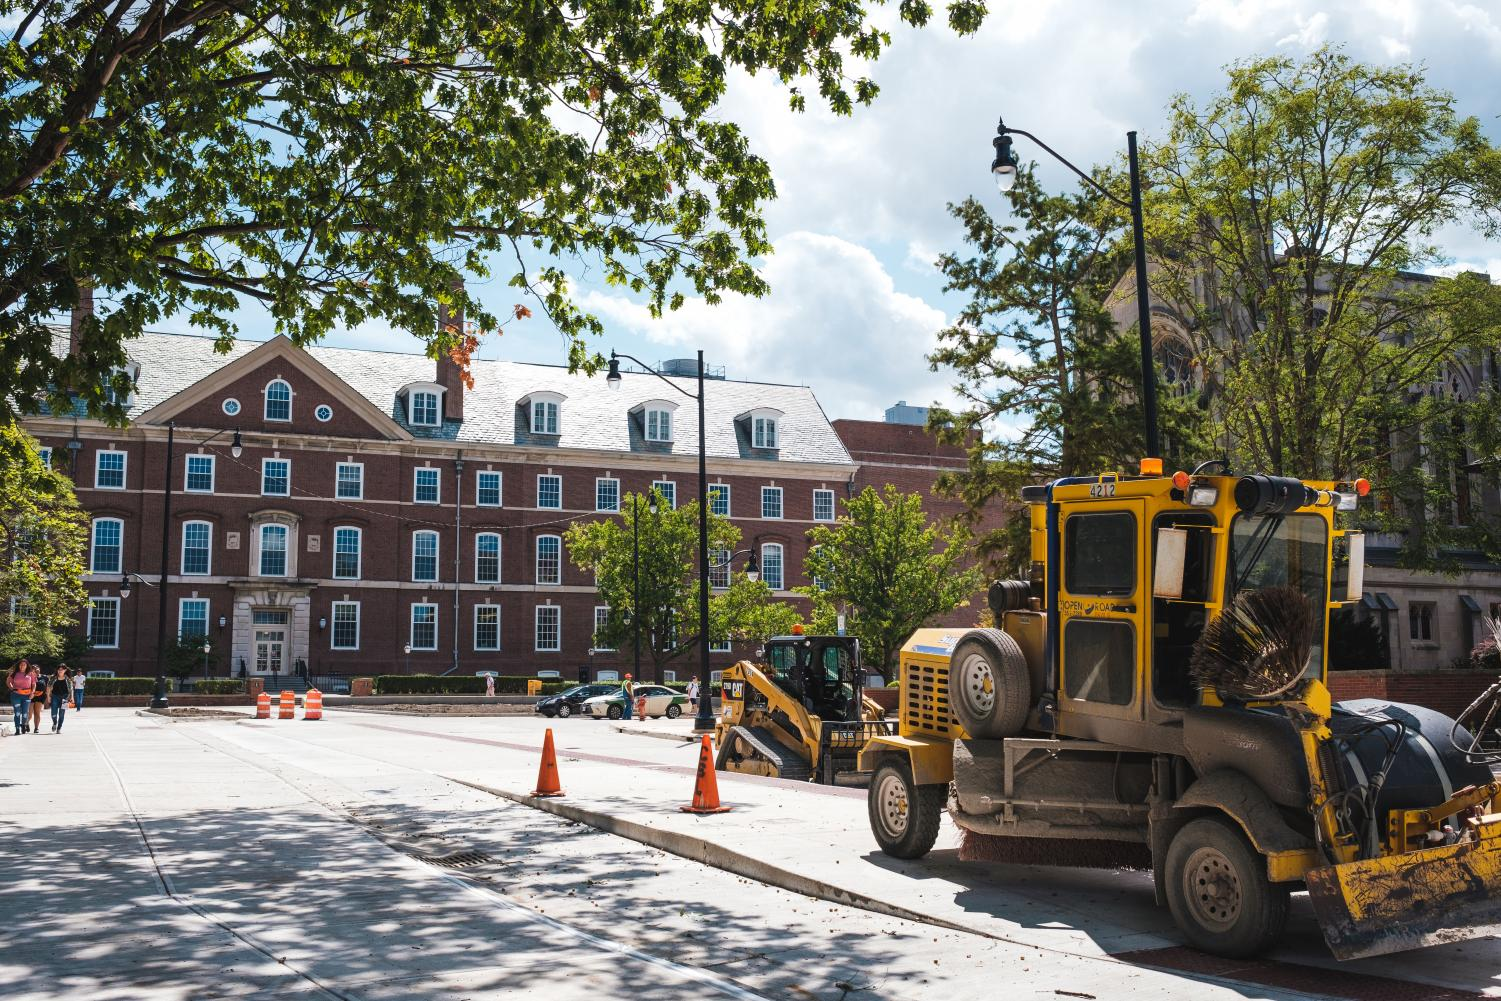 Construction continues at the corner of Armory Avenue and Wright Street on Saturday. Work on Wright Street is expected to be done below Green Street by January 2020.